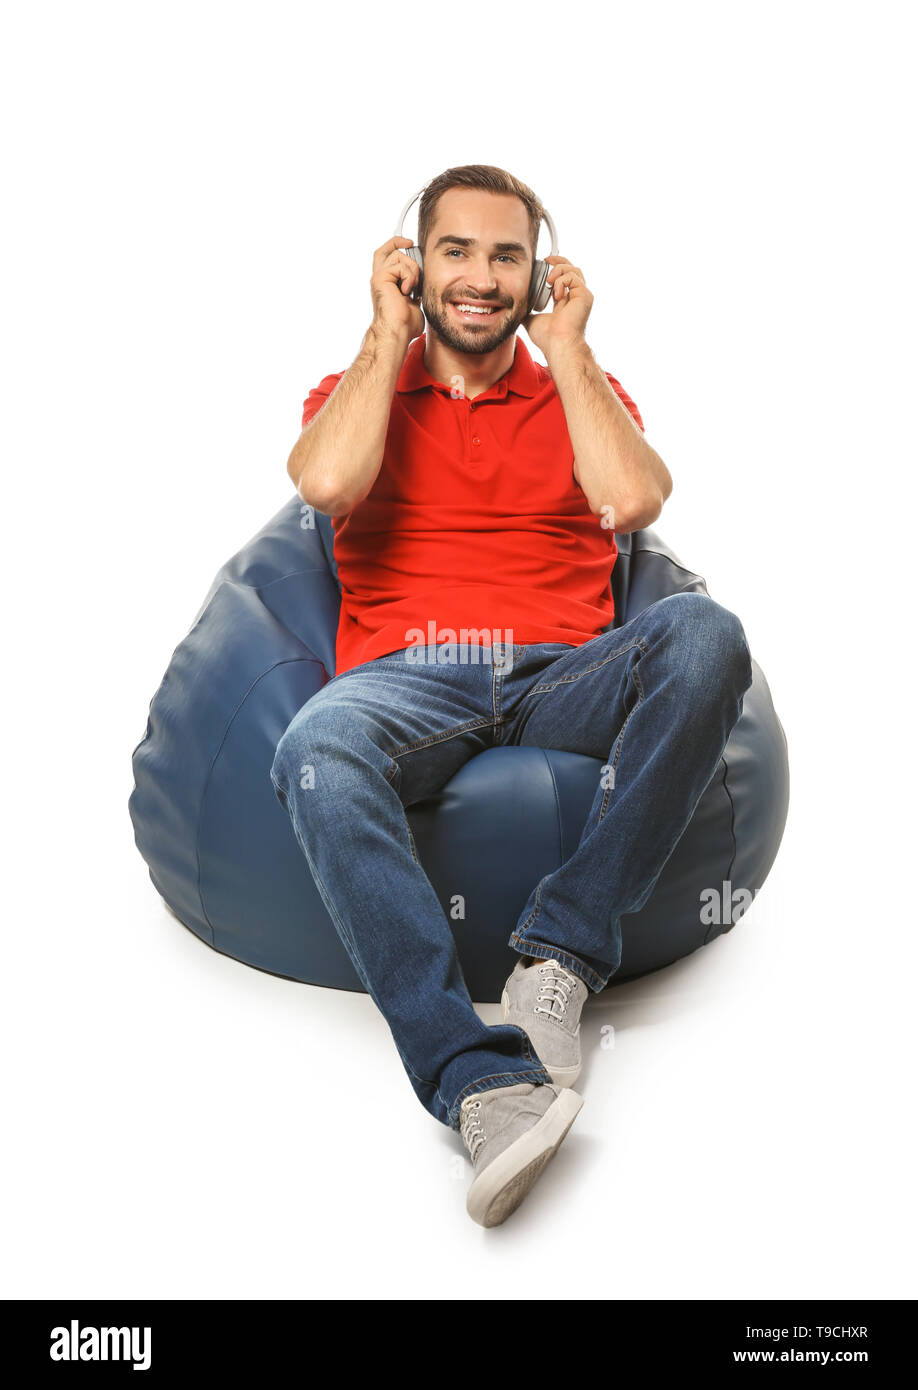 Young man with headphones sitting on beanbag chair against white background - Stock Image